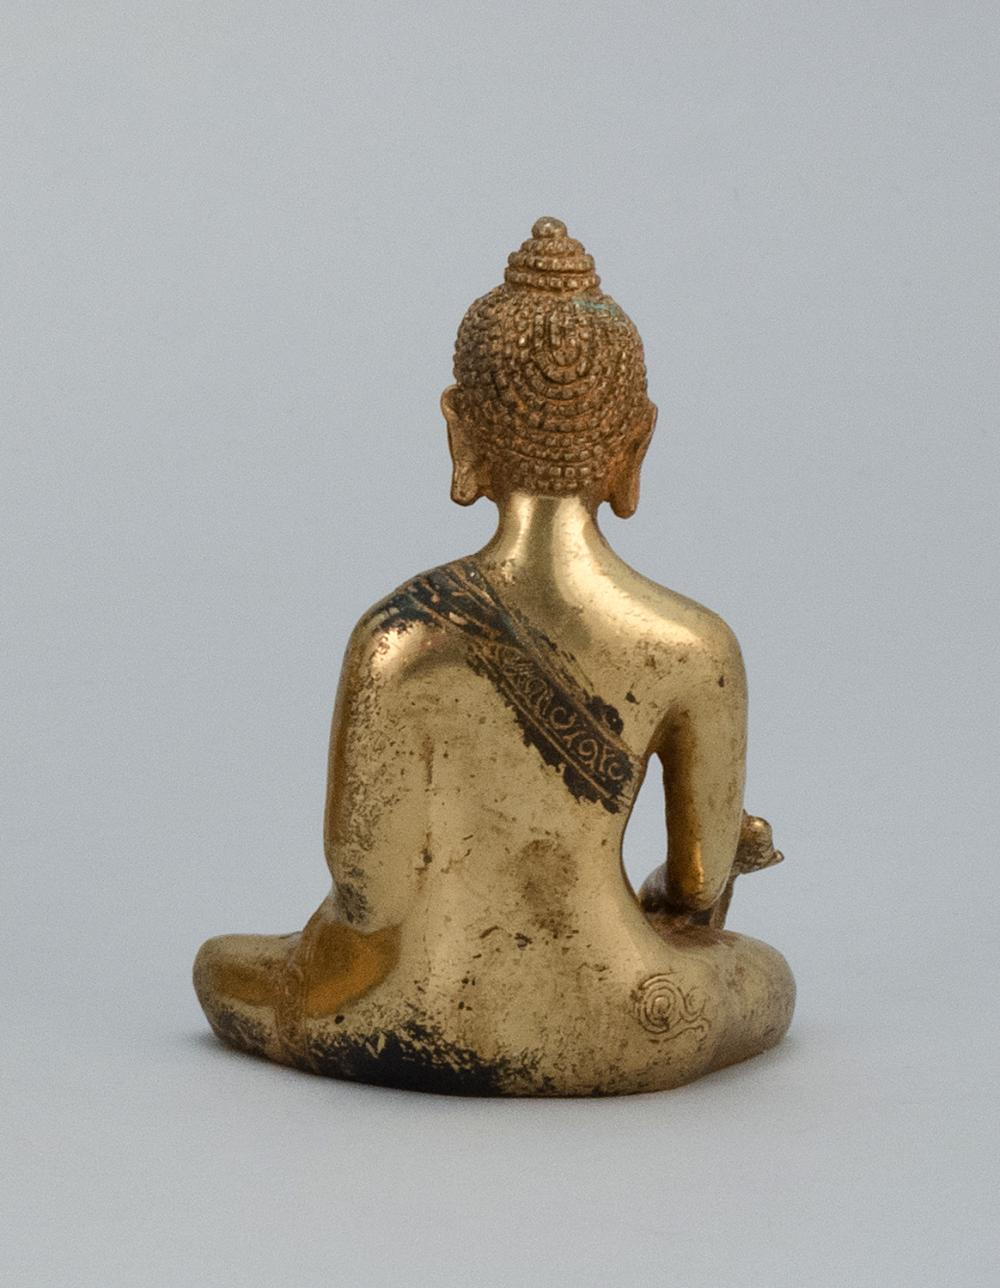 "Lot 923: CHINESE GILT-BRONZE FIGURE OF BUDDHA Seated in earth touching posture and holding a censer and a flower blossom. Height 4.2""."